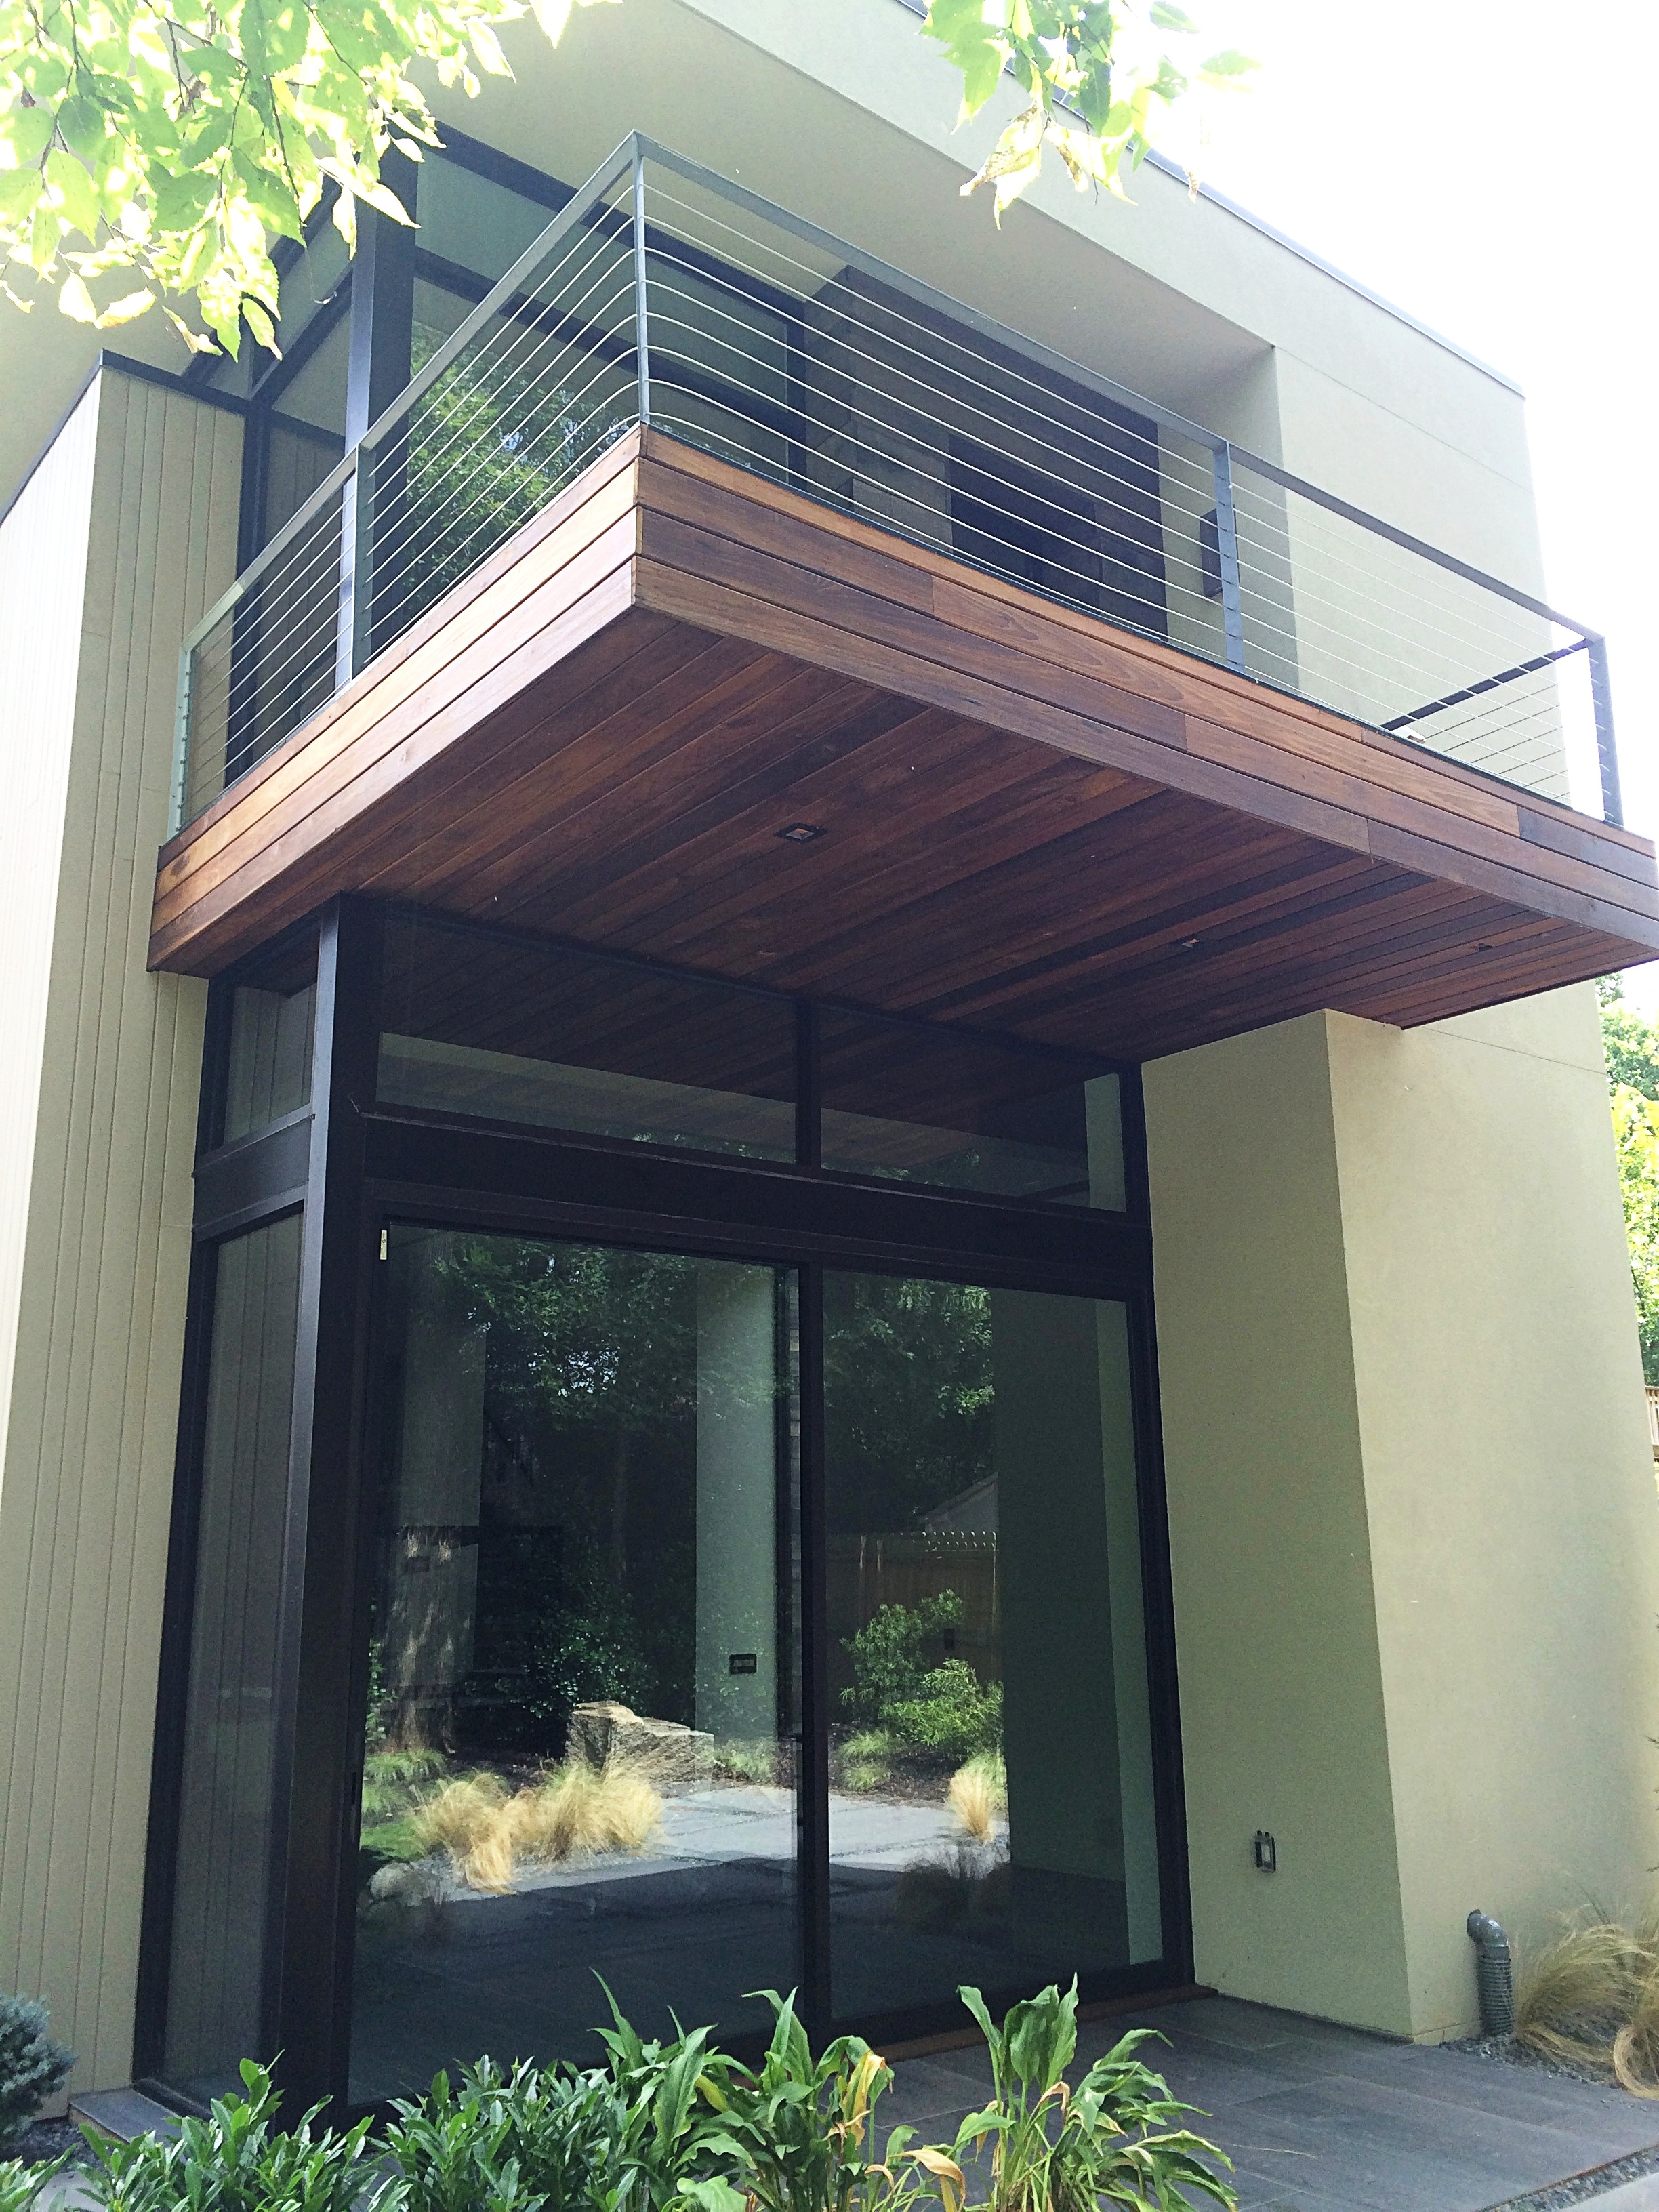 West+Architecture+Eutree+Forest+Free+white+oak+outdoor+siding+and+thermo+poplar+decking